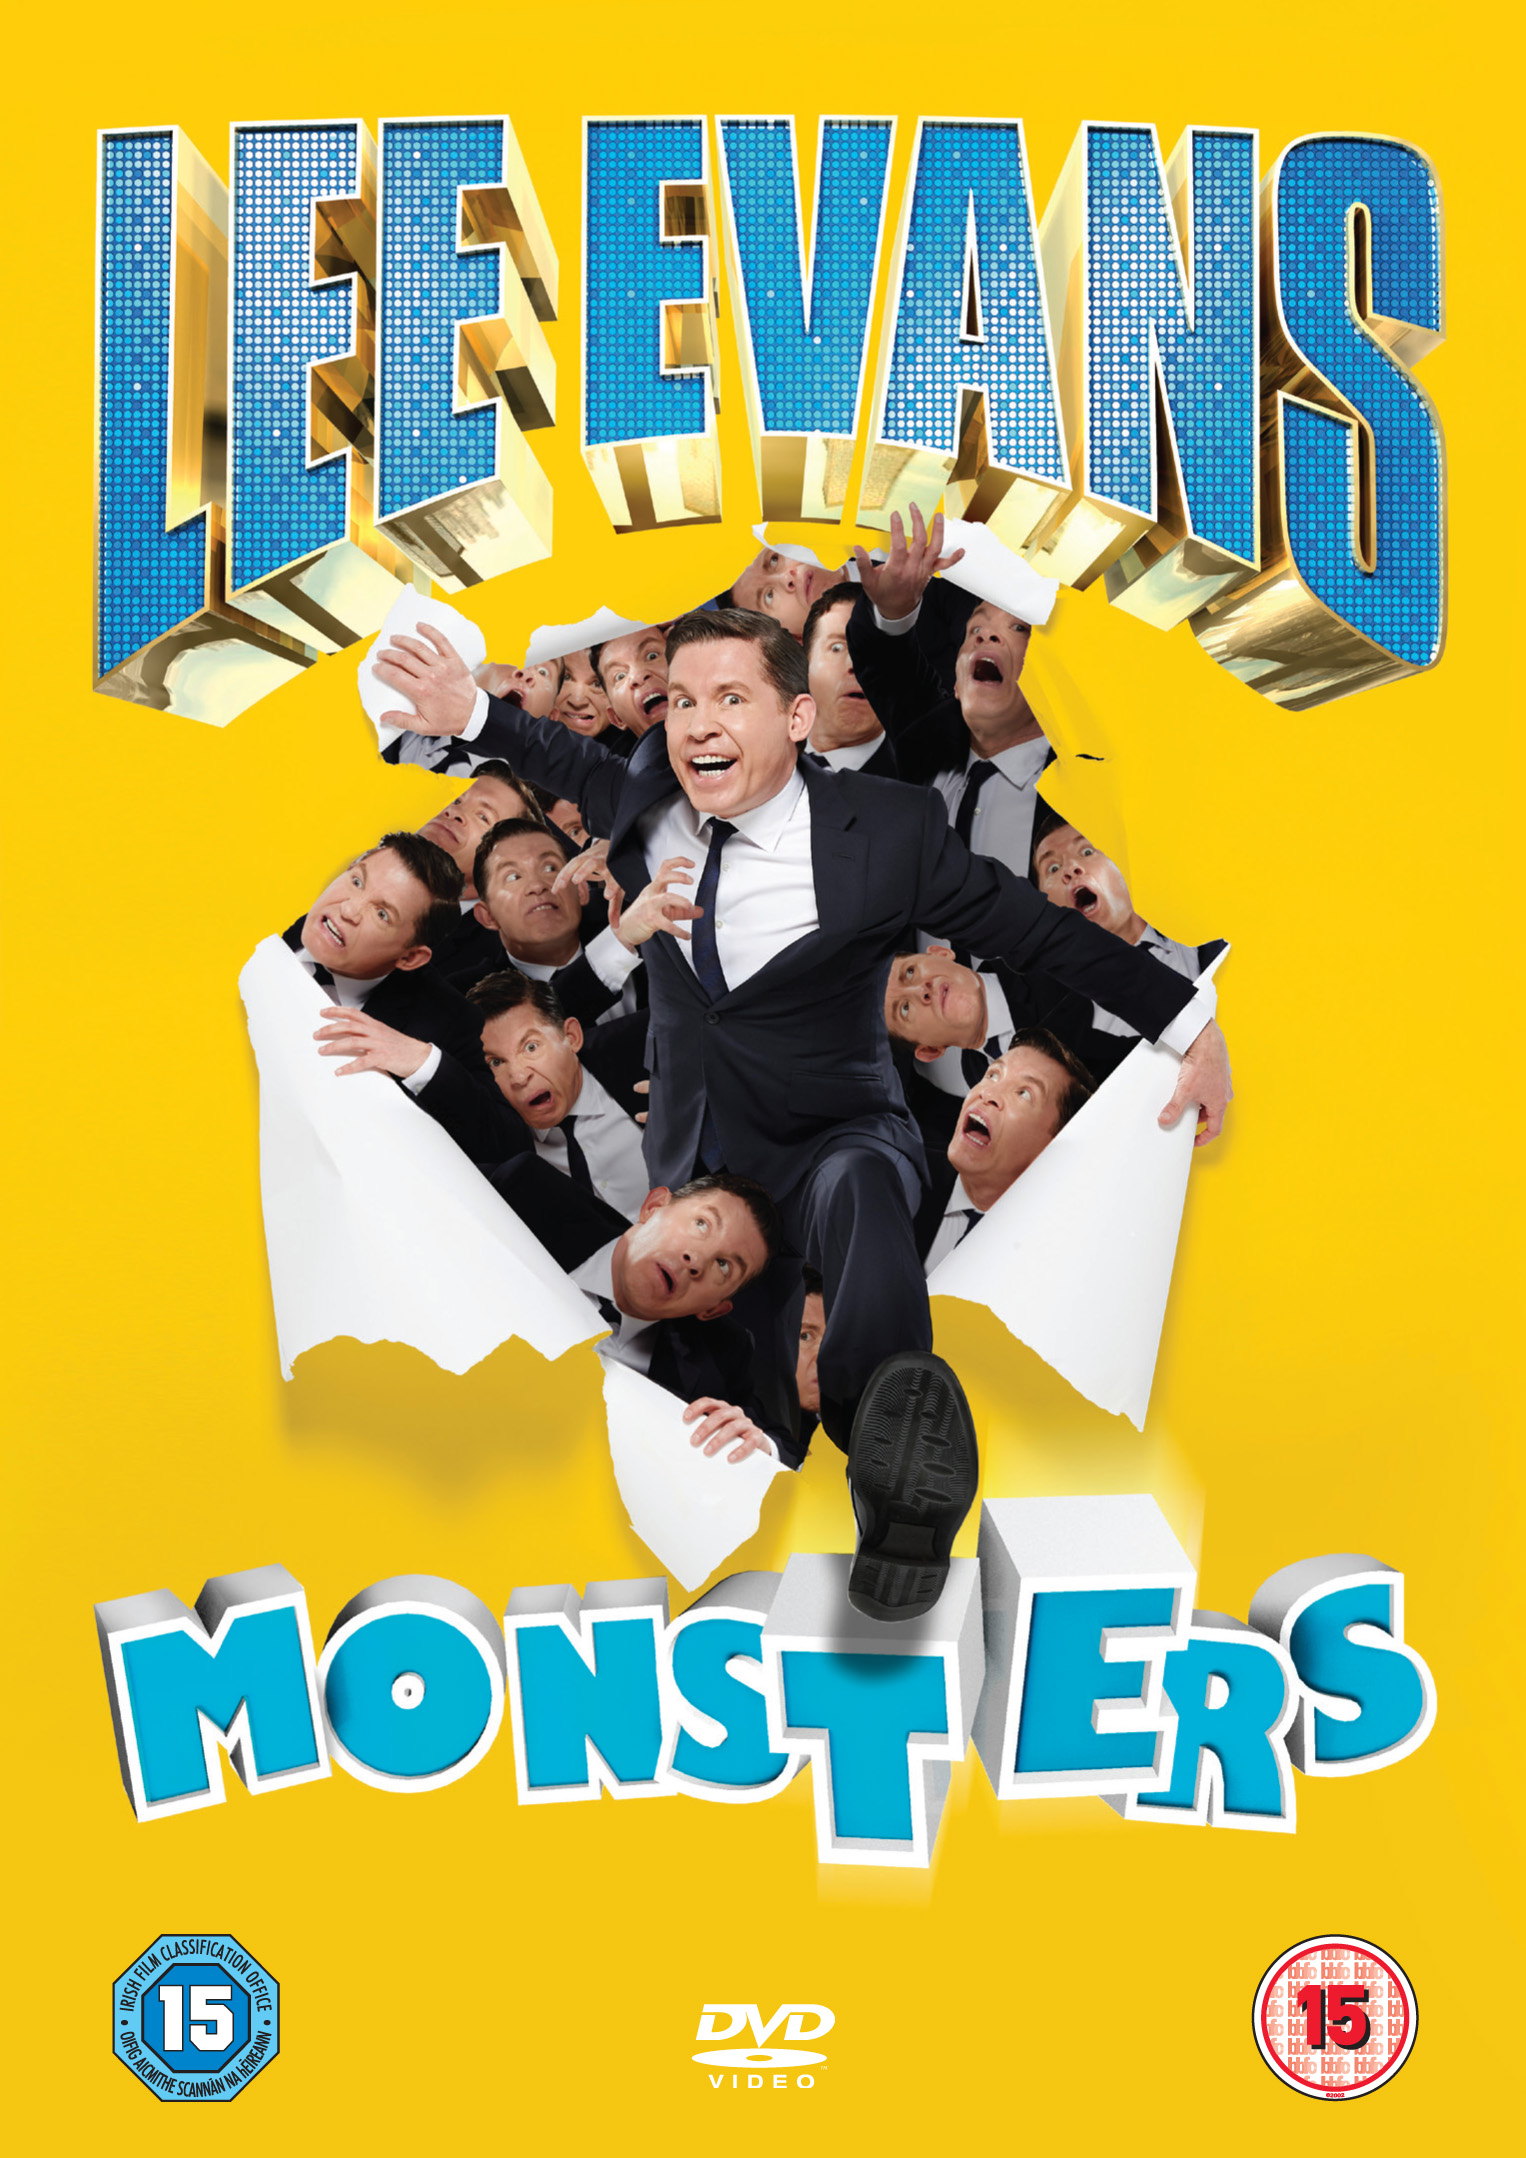 Lee Evans is back with 'Monsters' live DVD